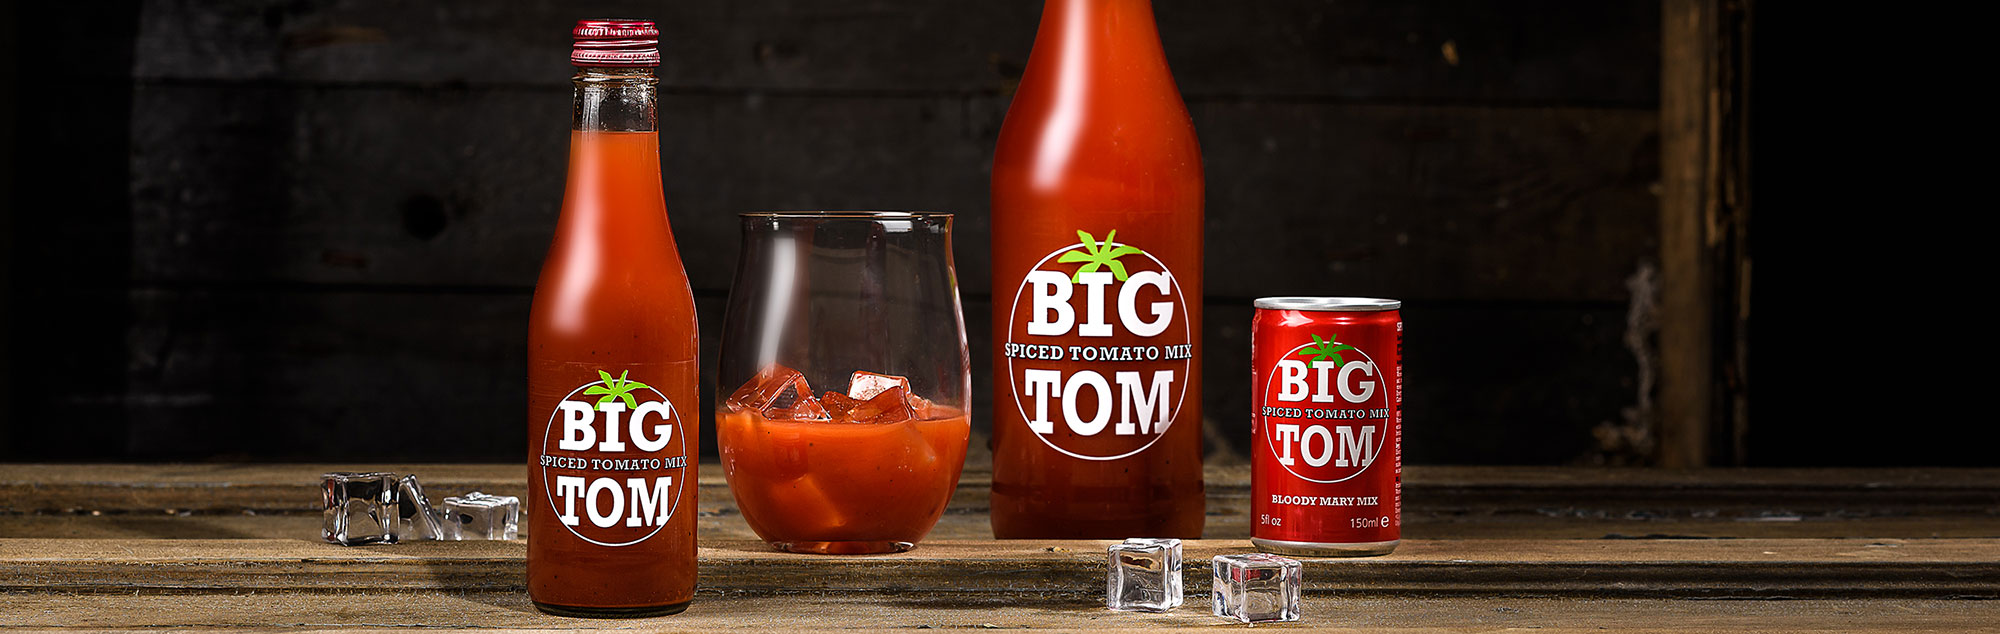 Big-Tom-Tomato-MiX.jpg